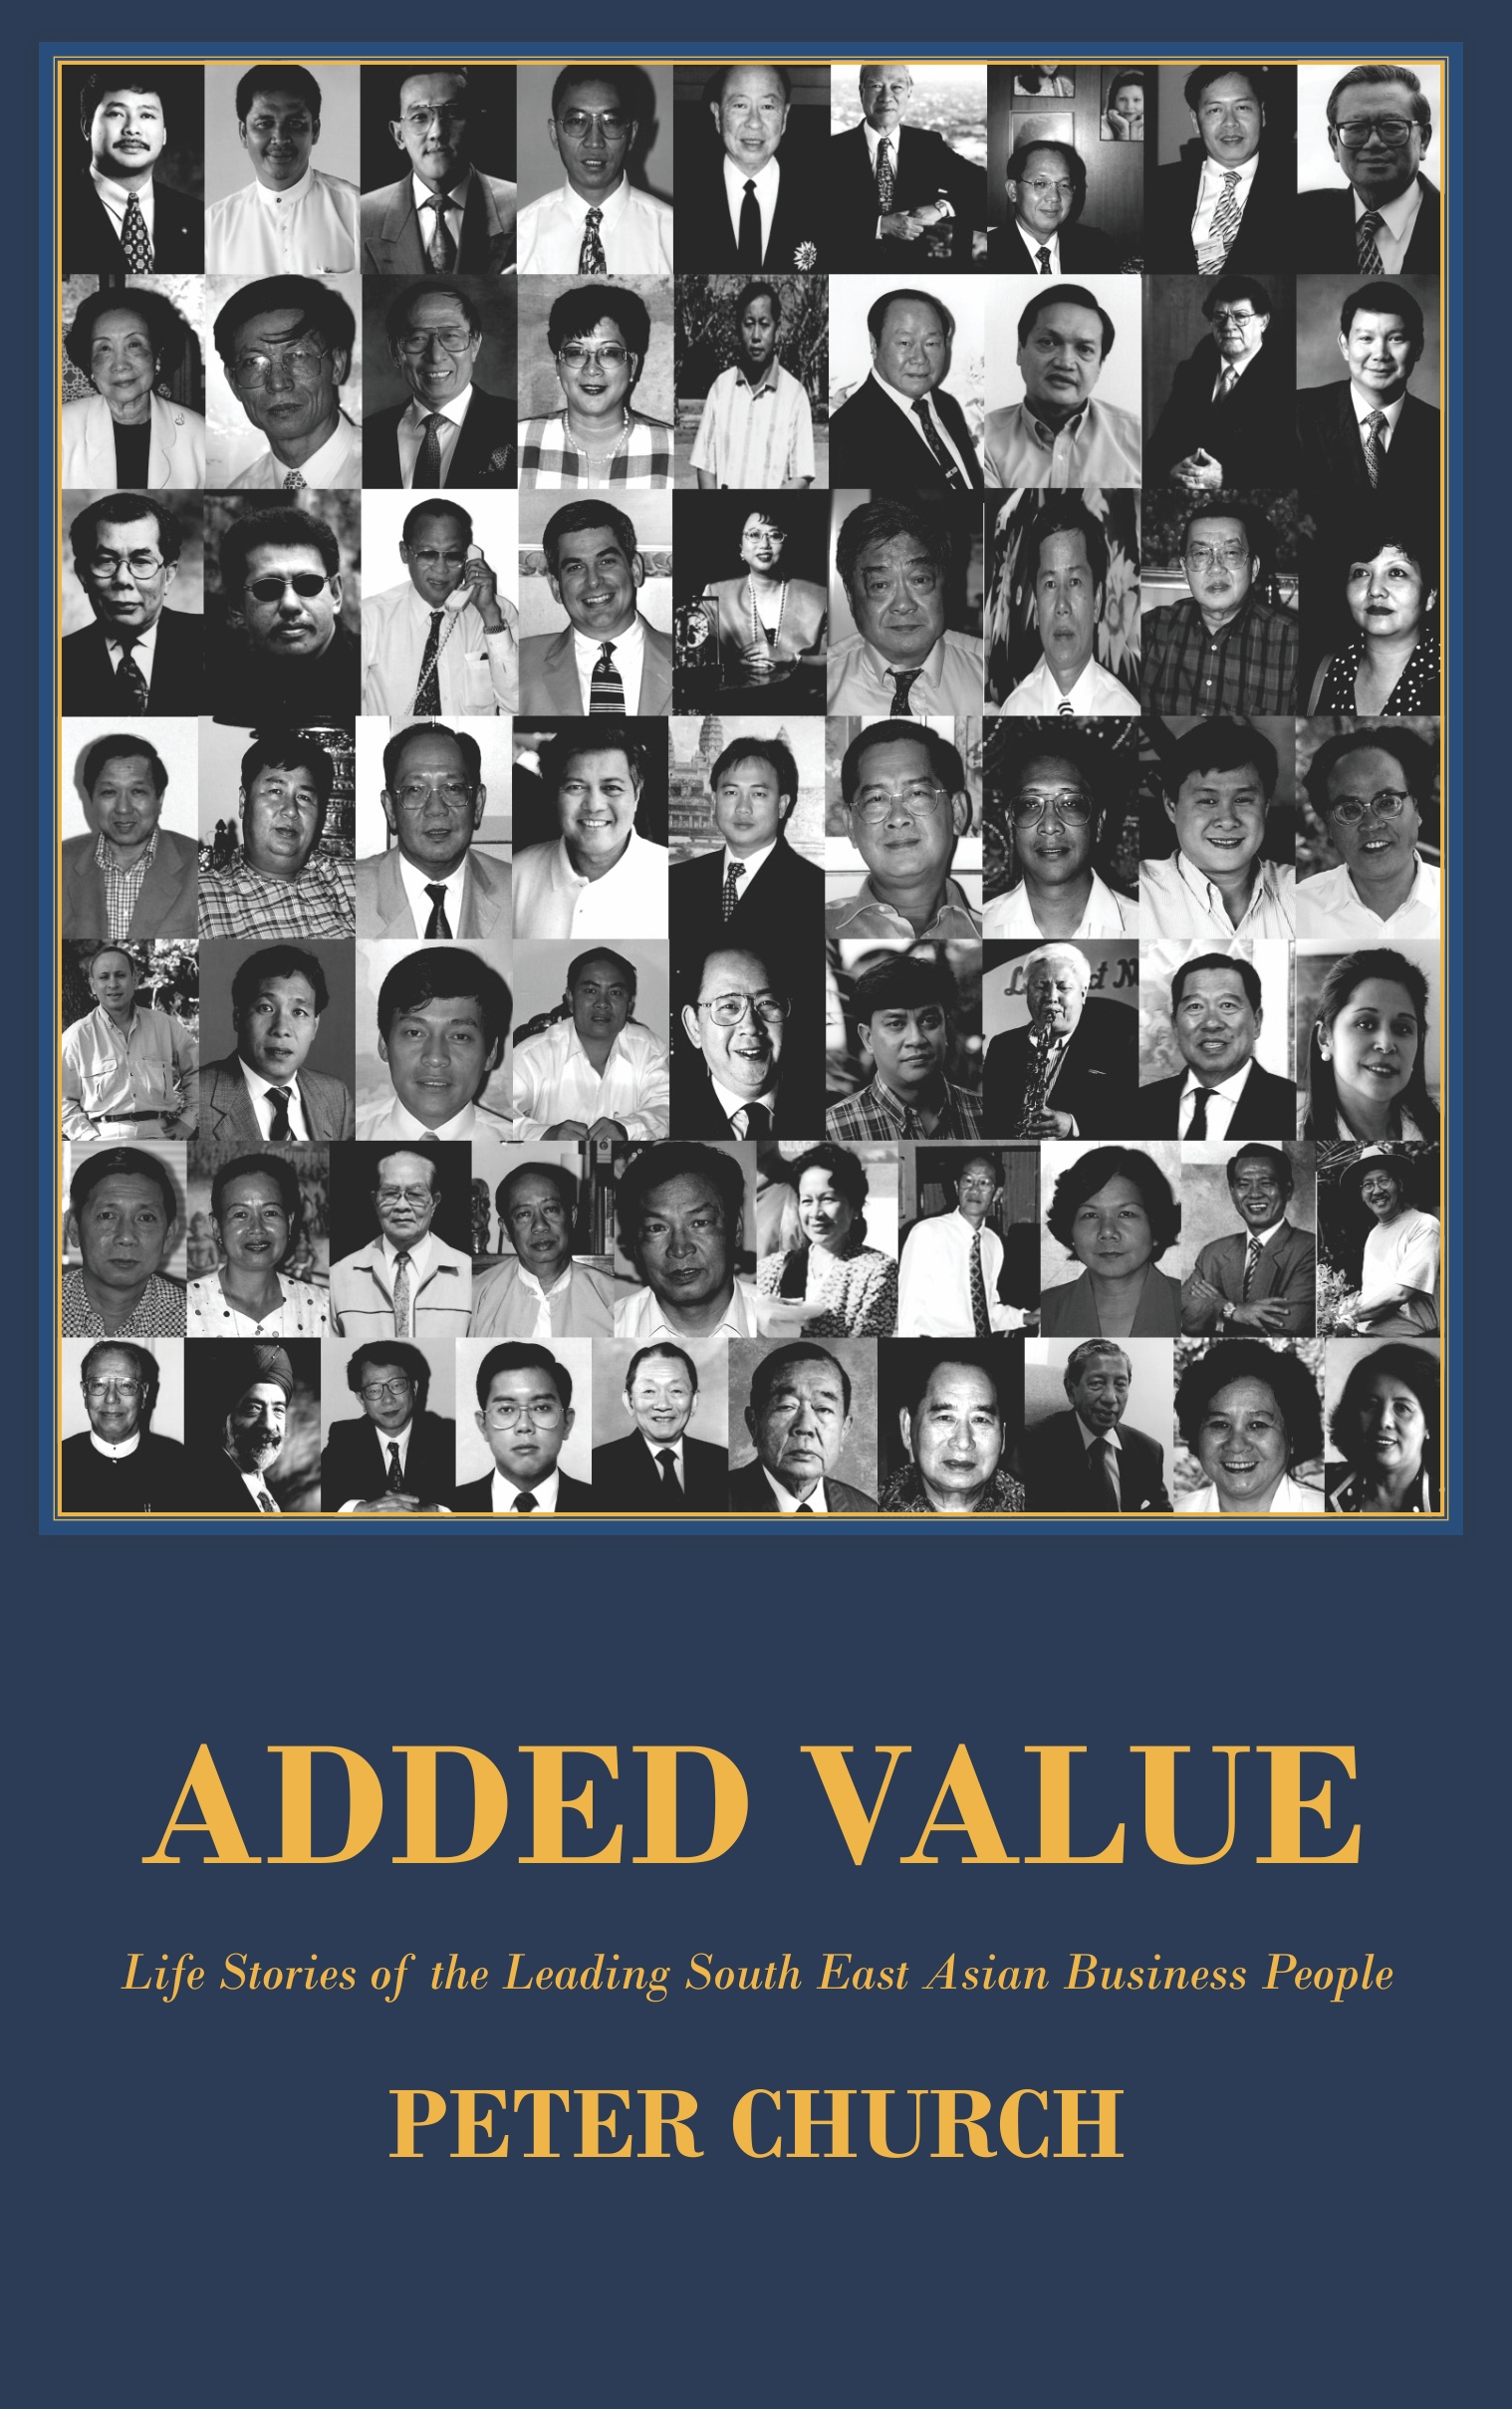 Added Value – the Life Stories of Leading South East Asian Business People